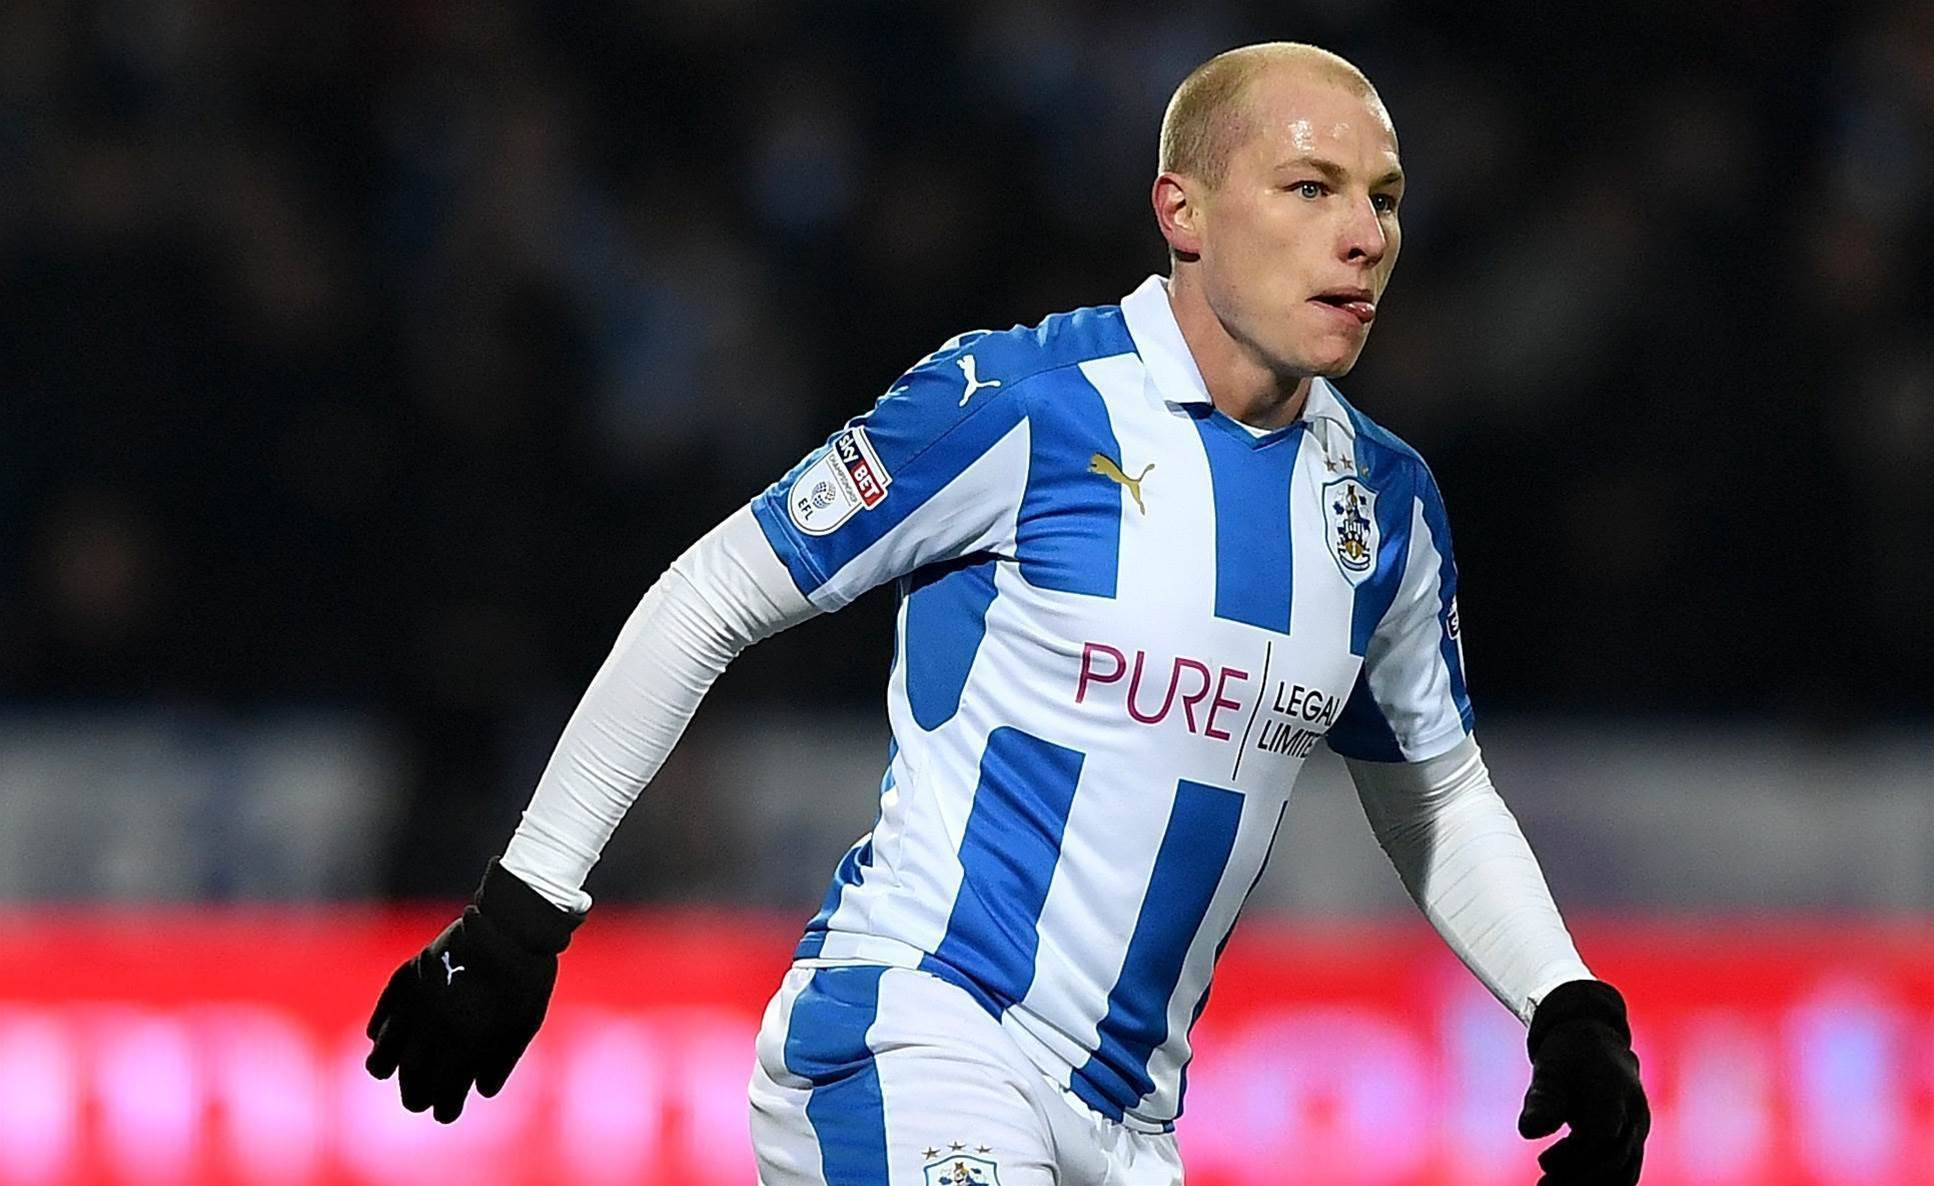 Mooy claims another gong